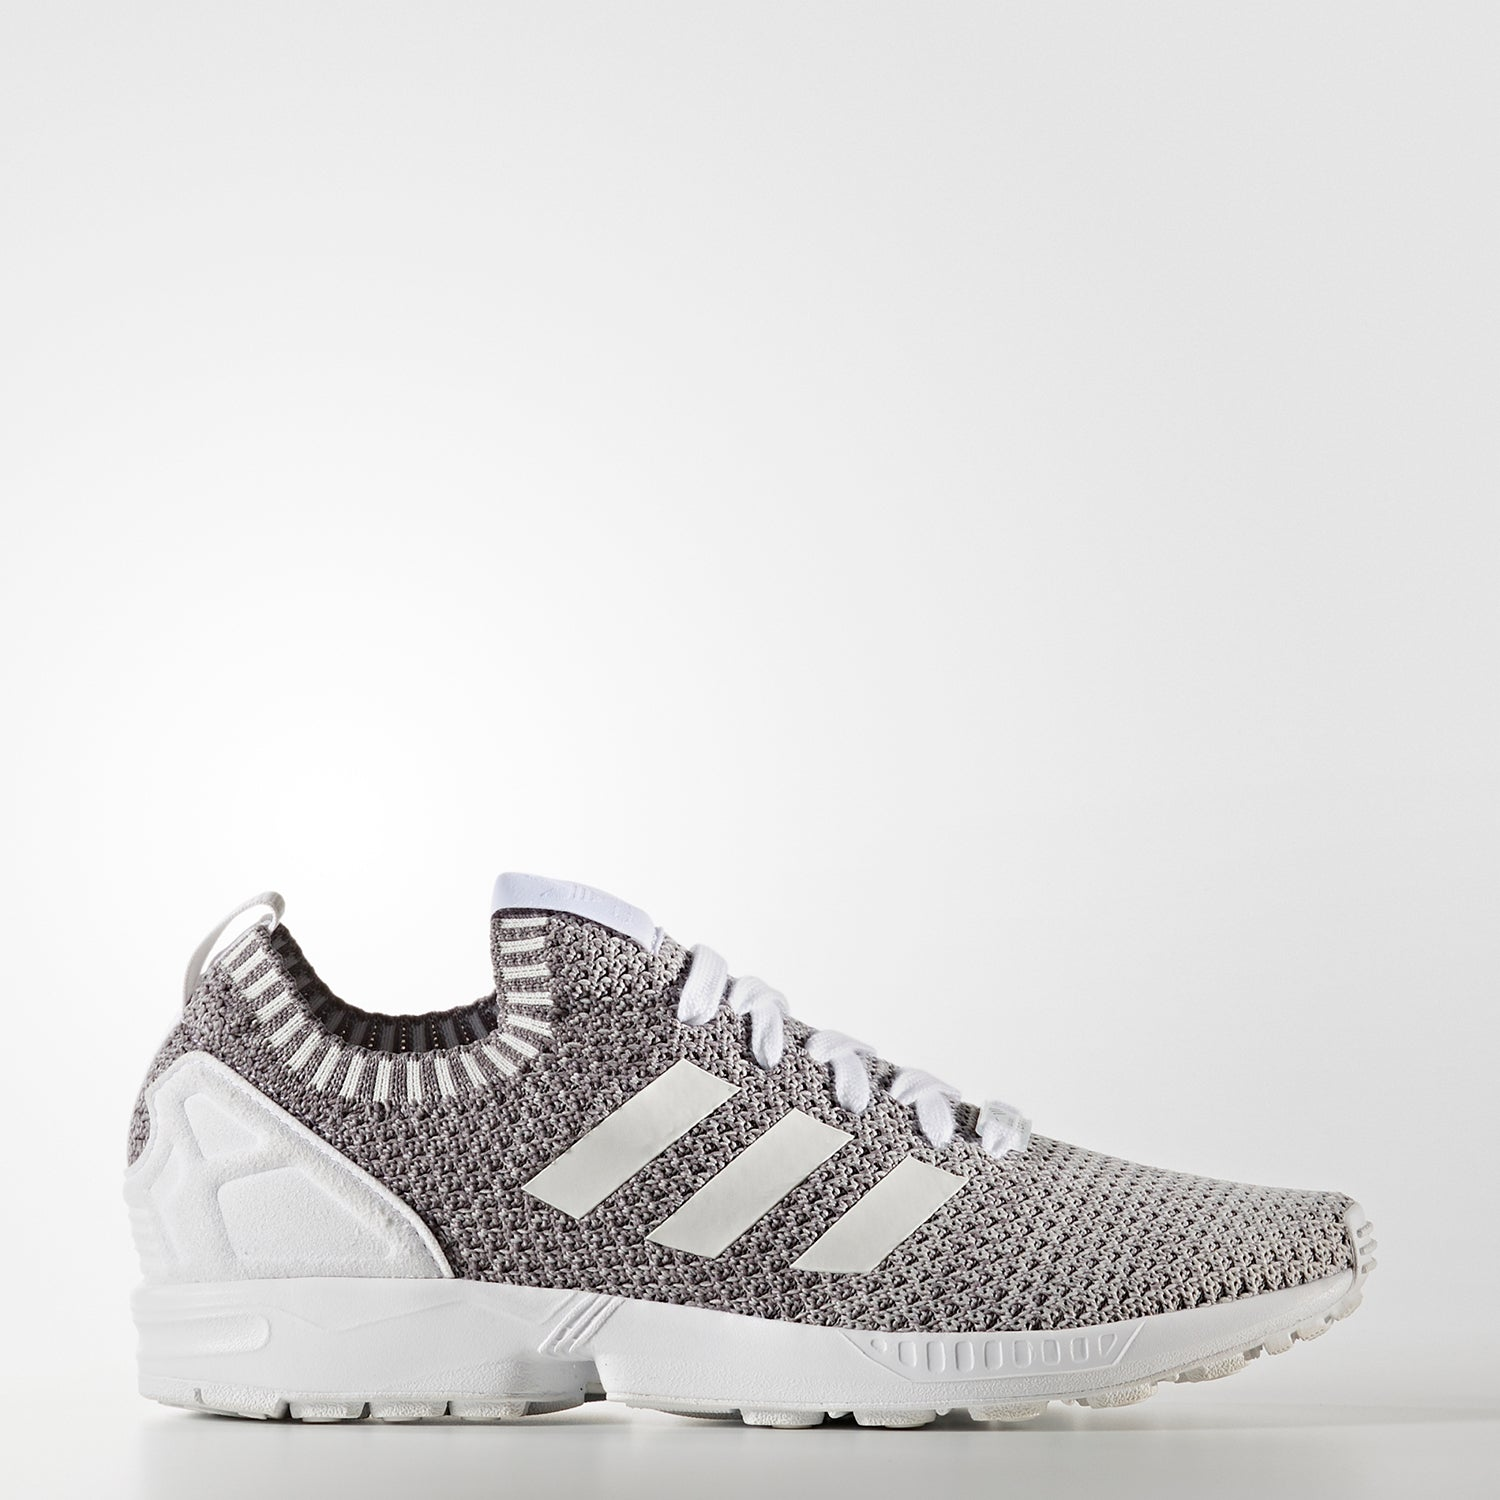 quality design 7cfb3 6bc6f zx flux 3